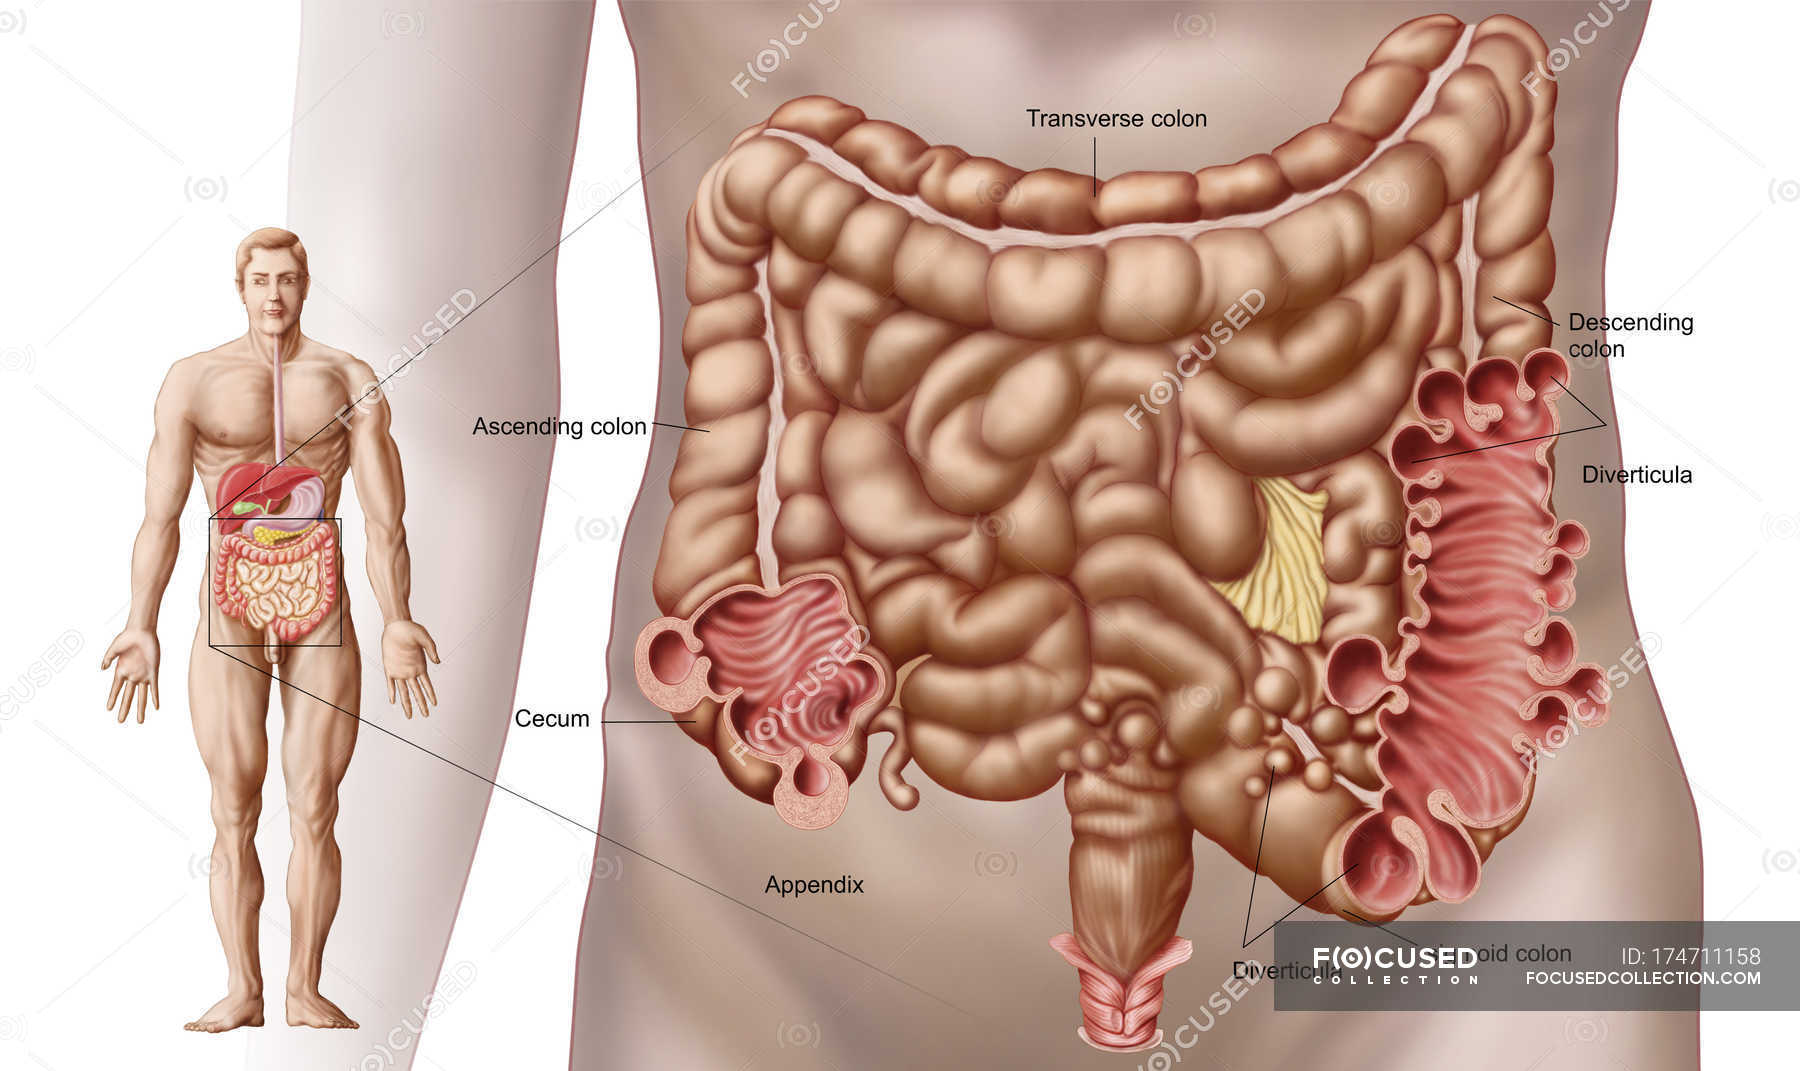 Illustration of diverticulitis in the descending colon of the human ...